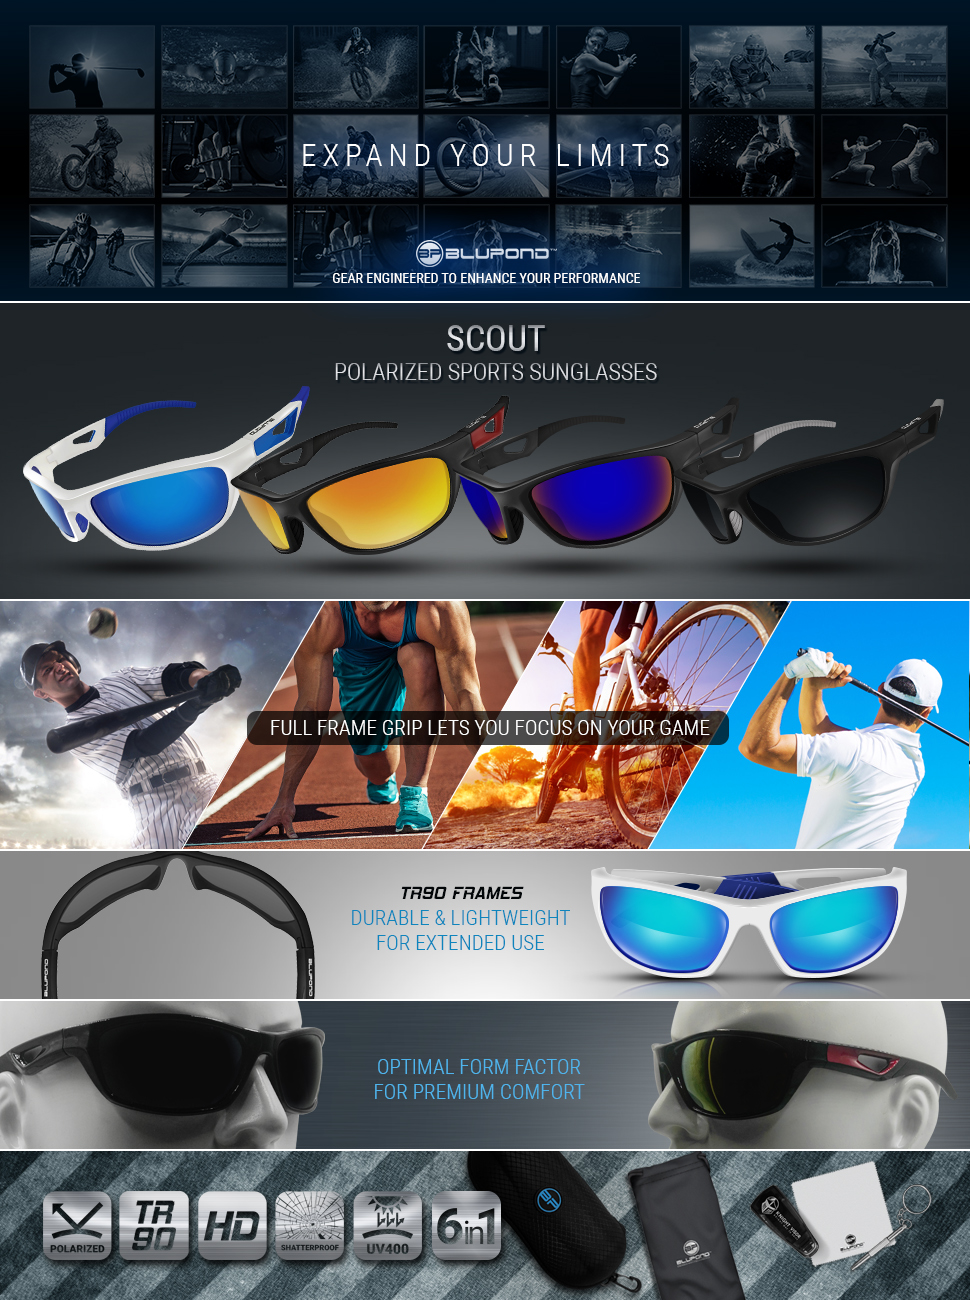 5e87836f499 Amazon.com  BLUPOND Polarized Sports Sunglasses for Men - TR90 ...